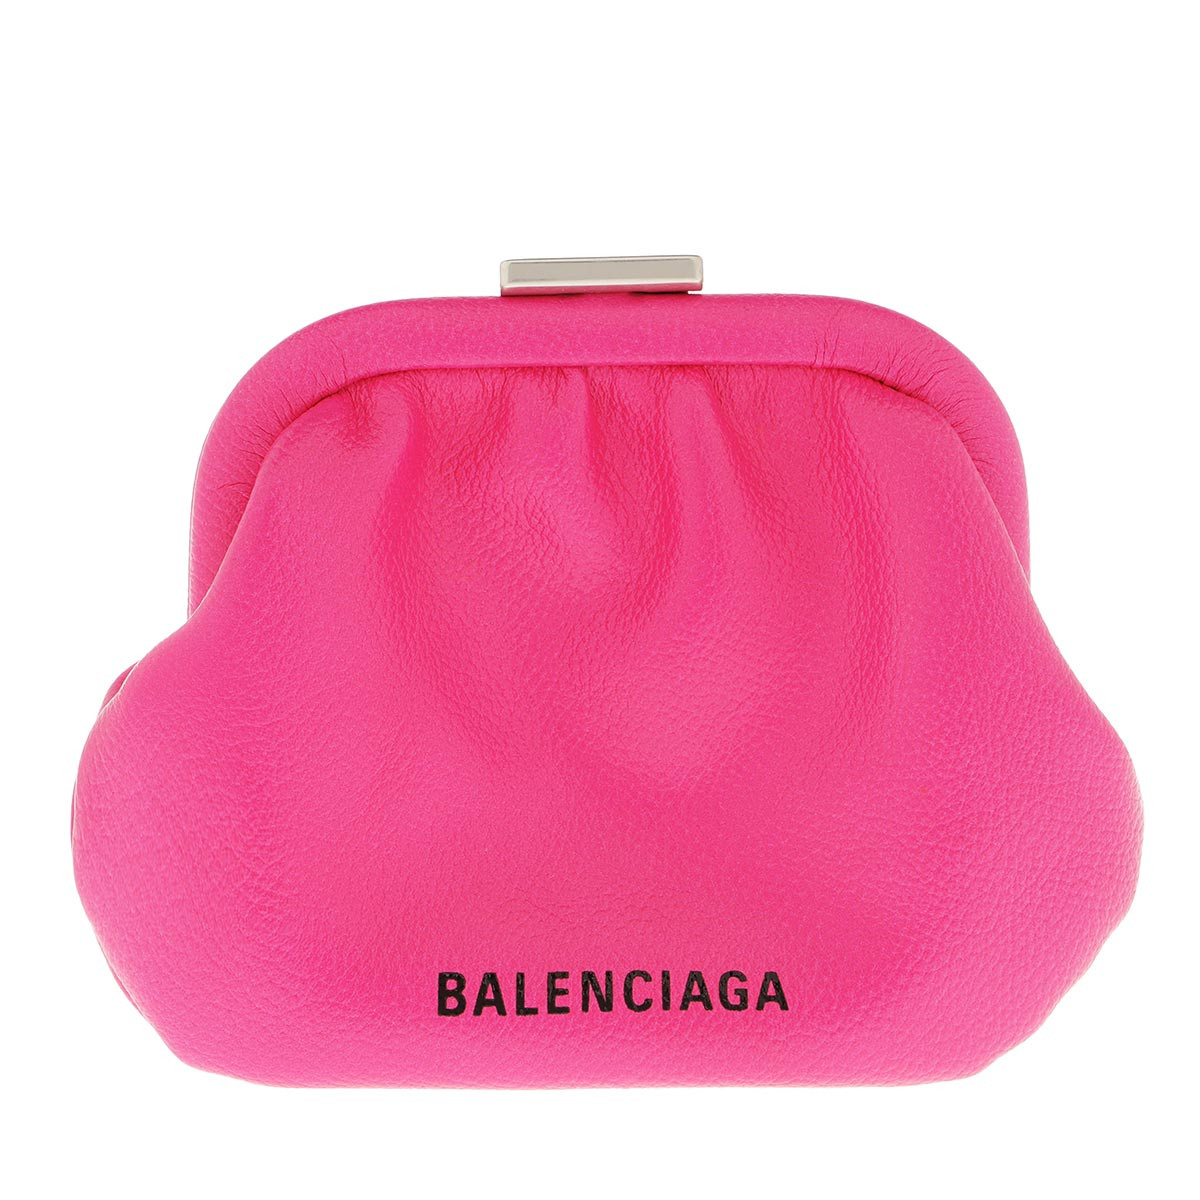 Balenciaga Umhängetasche - Cloudy Grained Crossbody Bag Fuchsia - in pink - für Damen